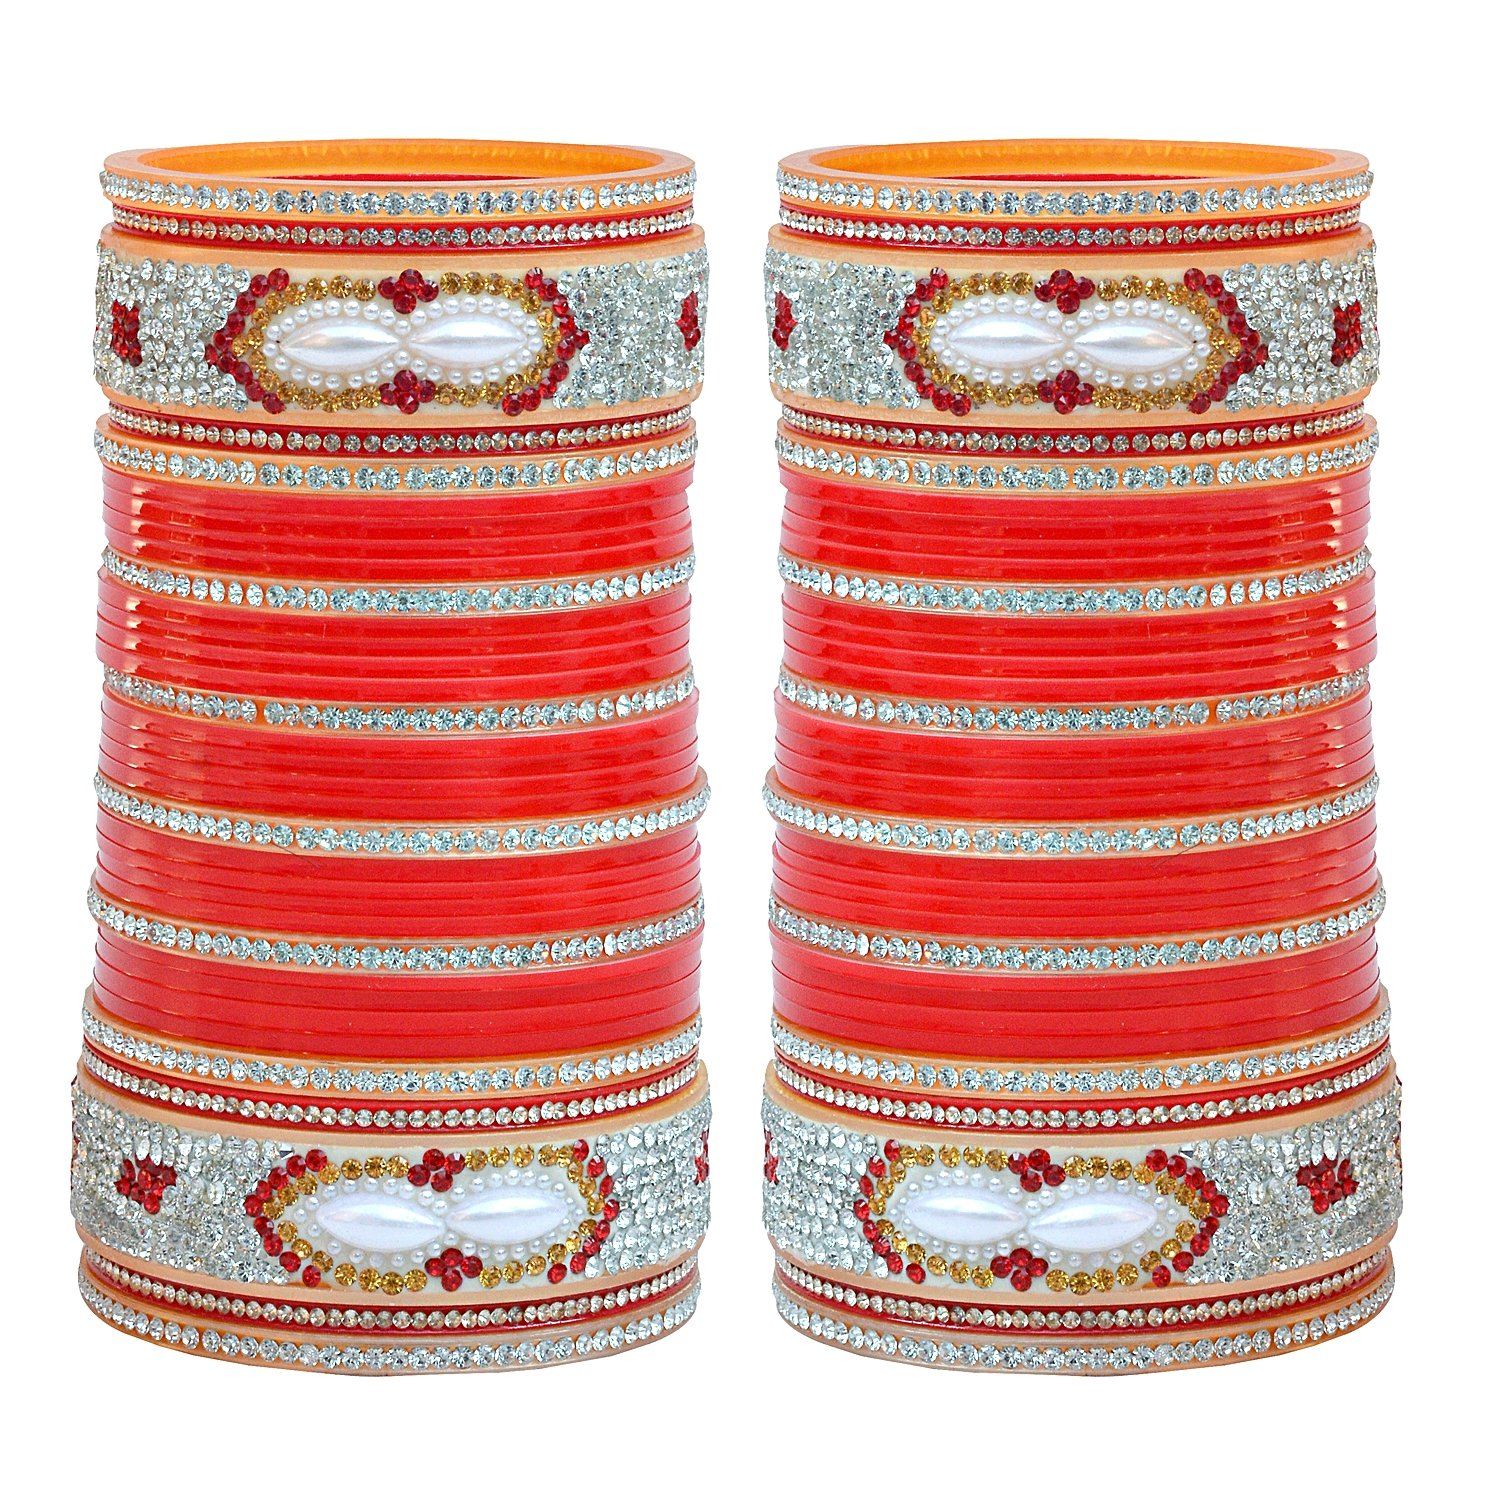 earrings design fashion arrivals jewellery manihaar for chura bangles bracelets copy suhag wedding necklaces traditional acrylic red latest punjabi best bridal